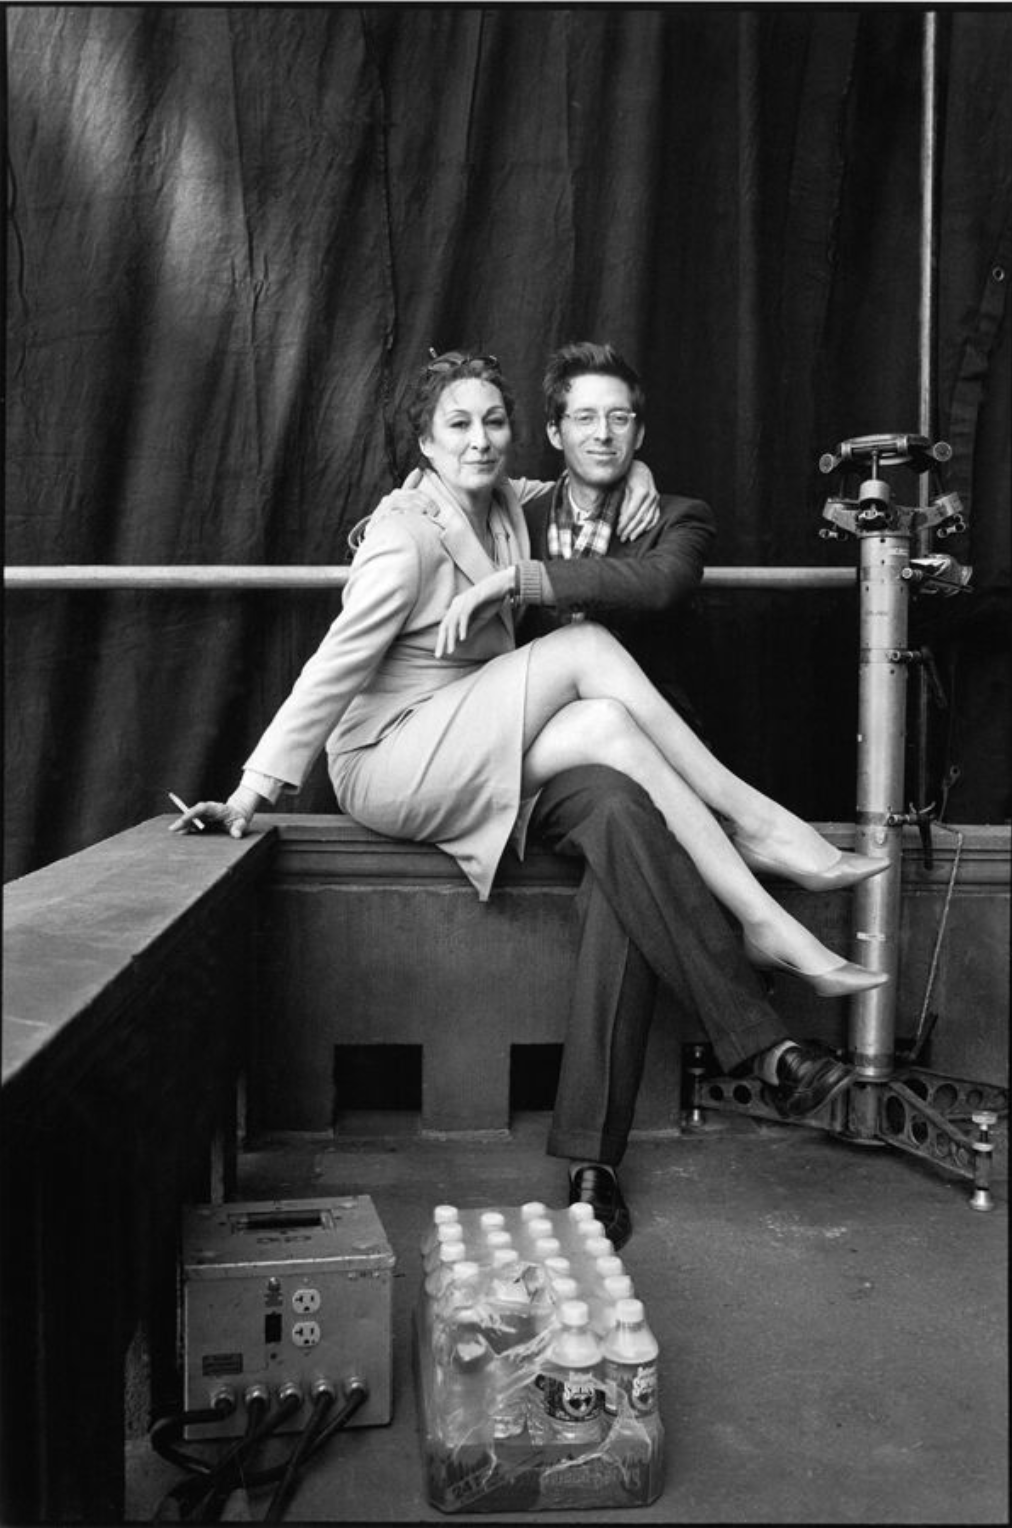 Behind the scenes with Anjelica Huston and Wes Anderson New York, New York, 2001